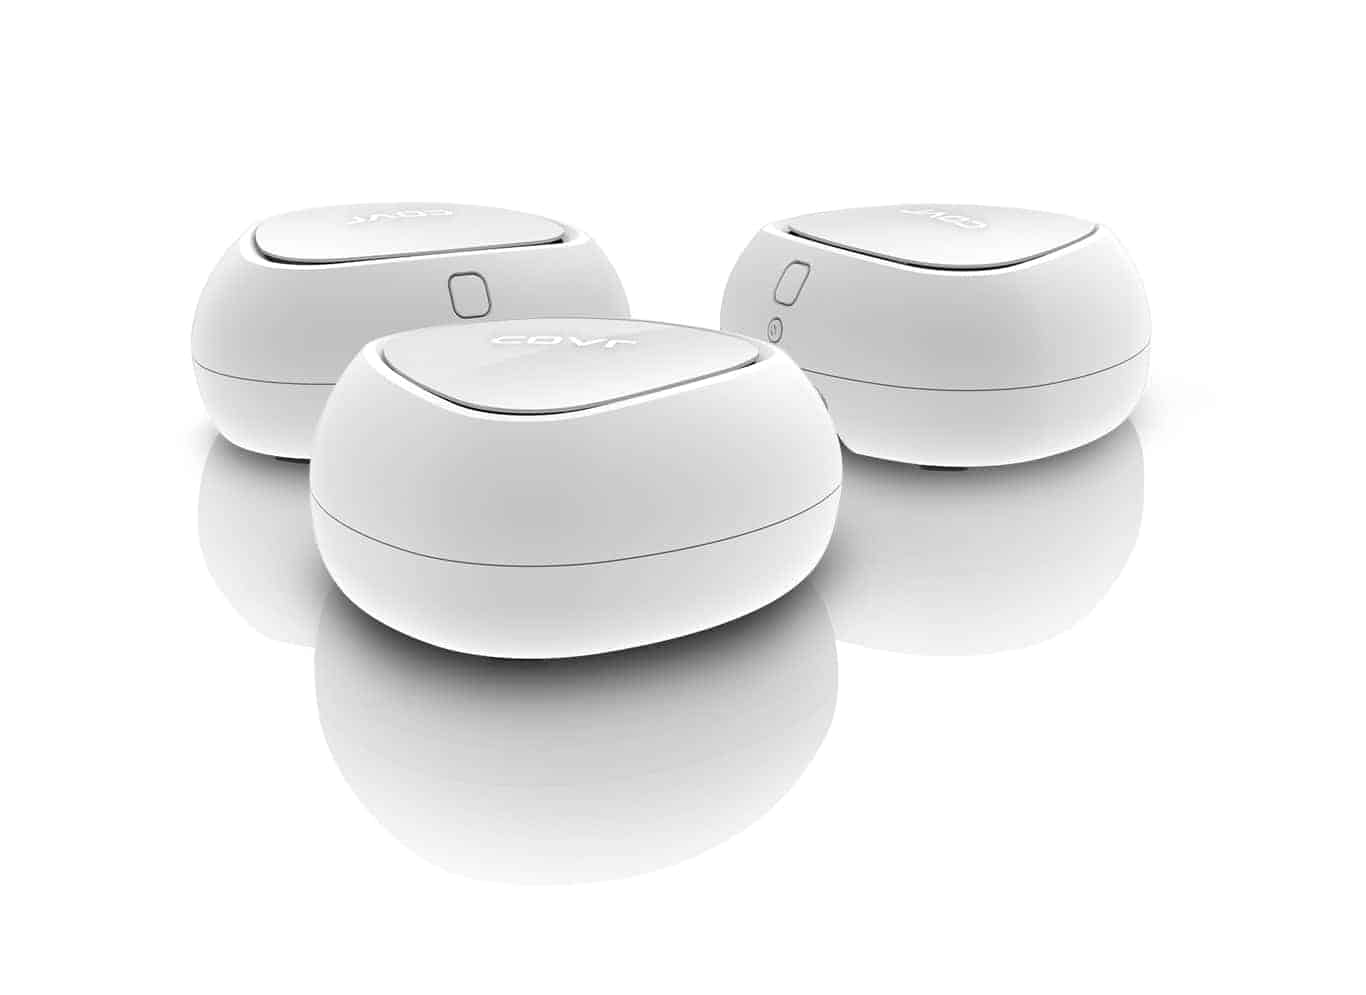 Link Expands Covr Family of Whole Home Wi-Fi Systems